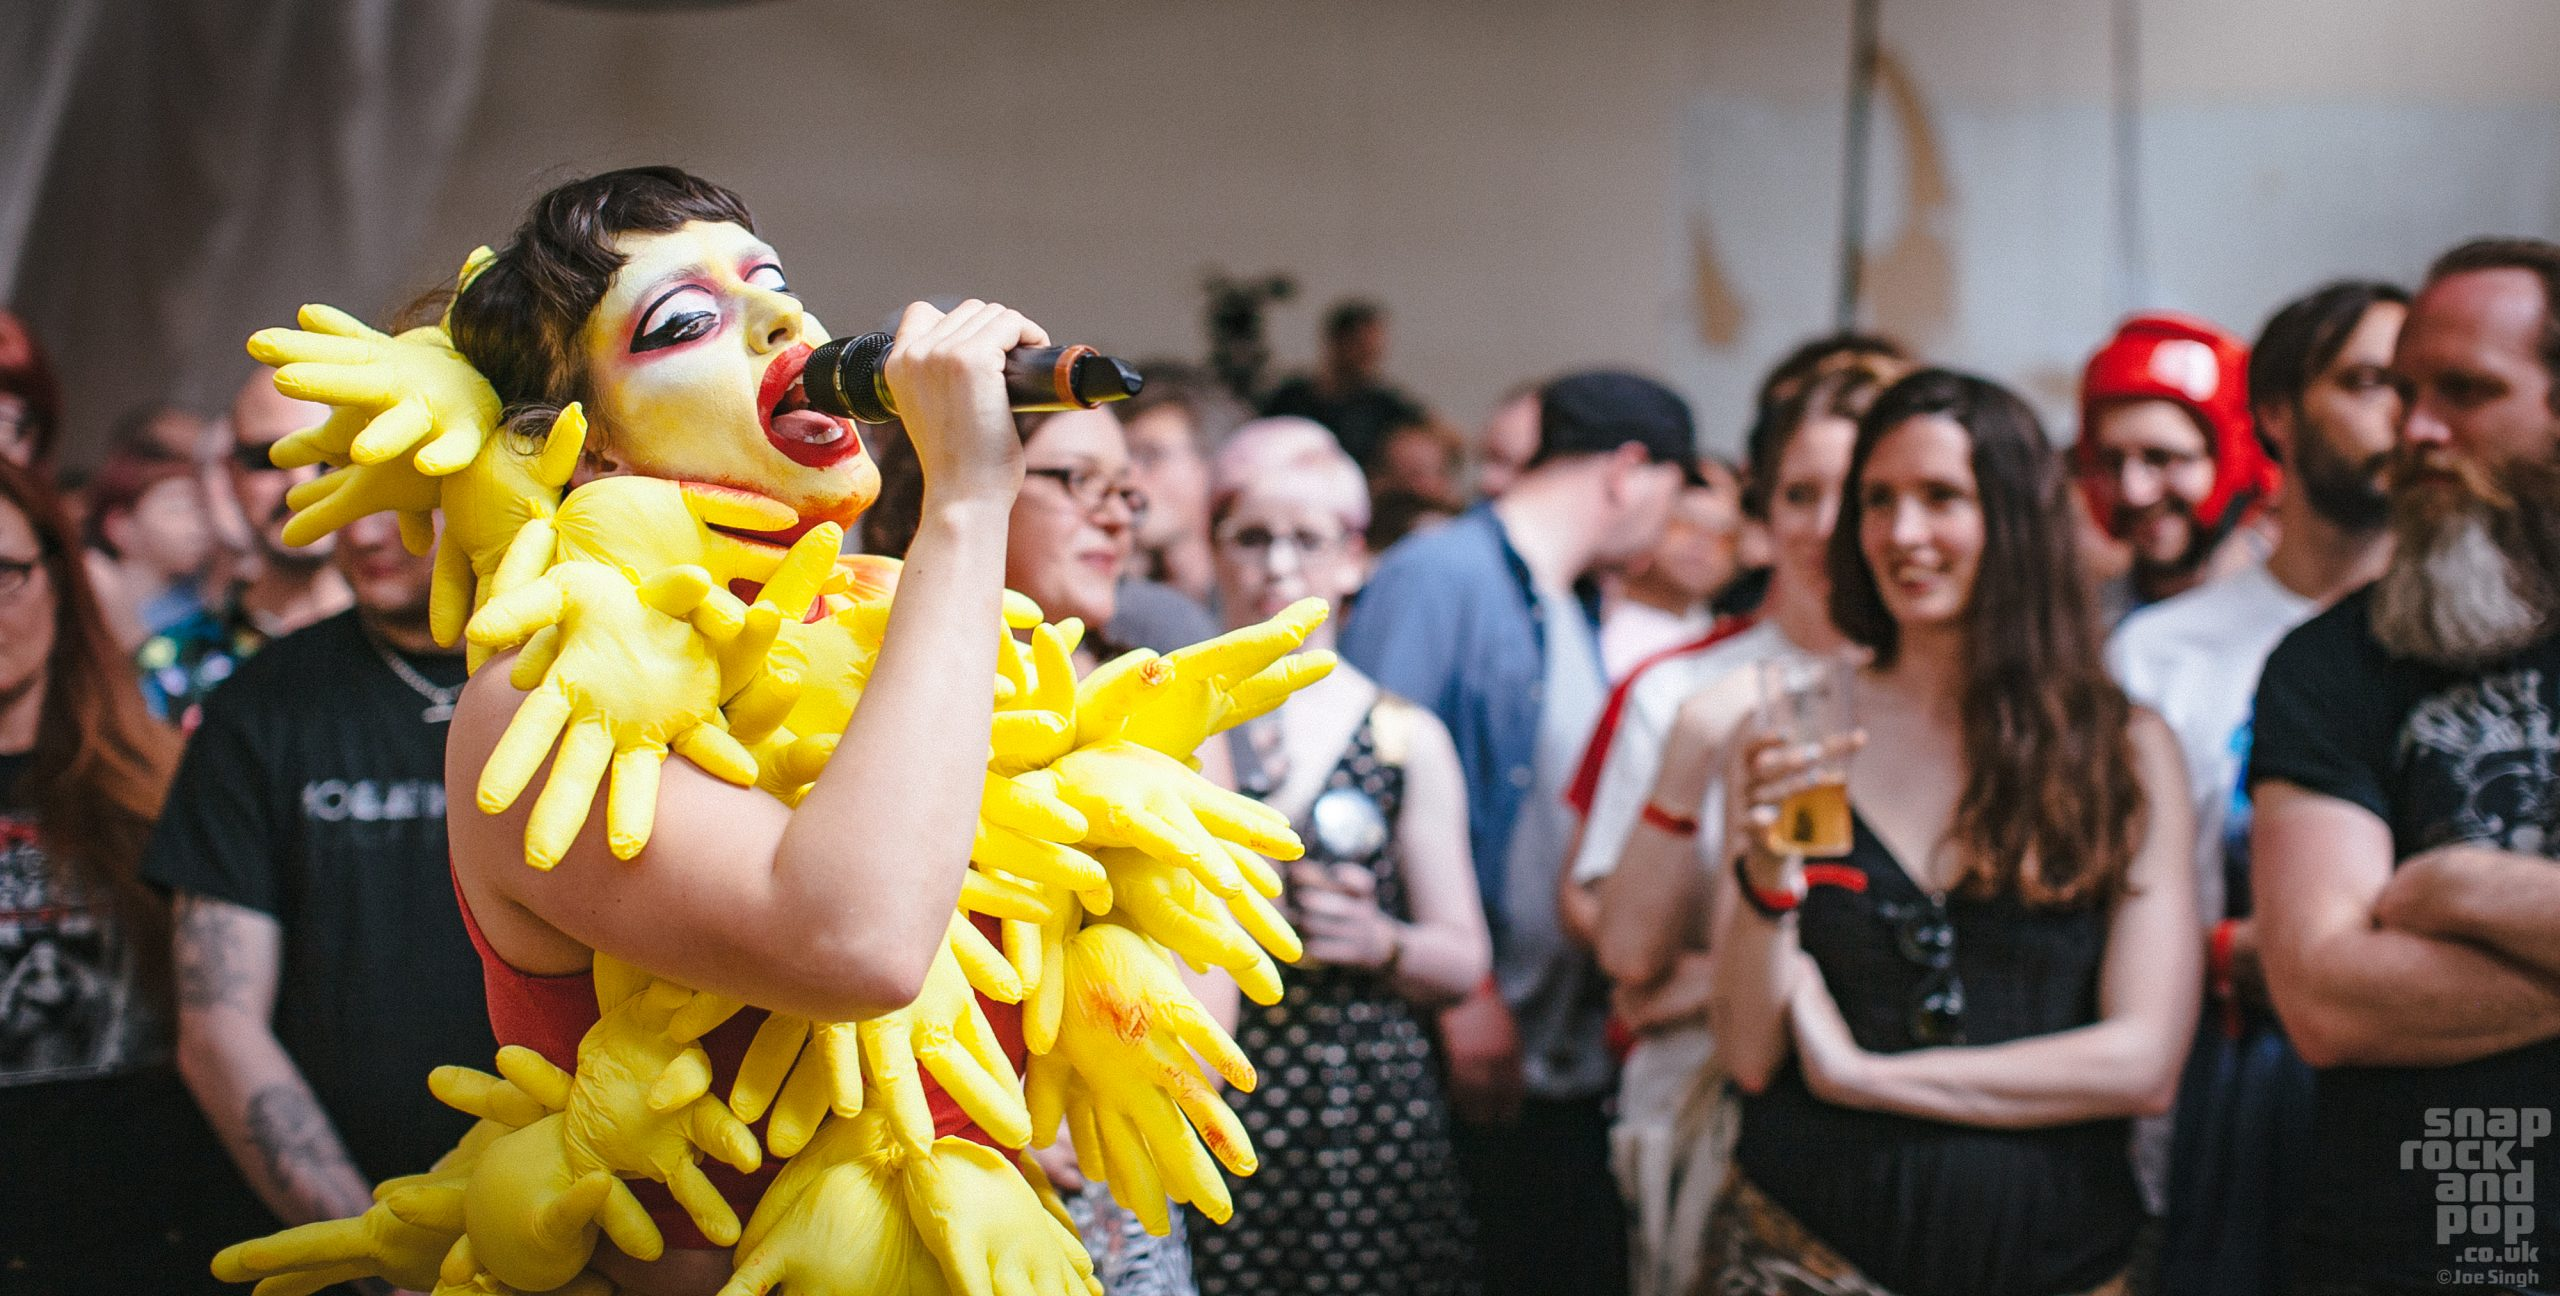 Natalie sharp aka. Lone Taxidermist performing at Supersonic Festival 2017 in a yellow costume